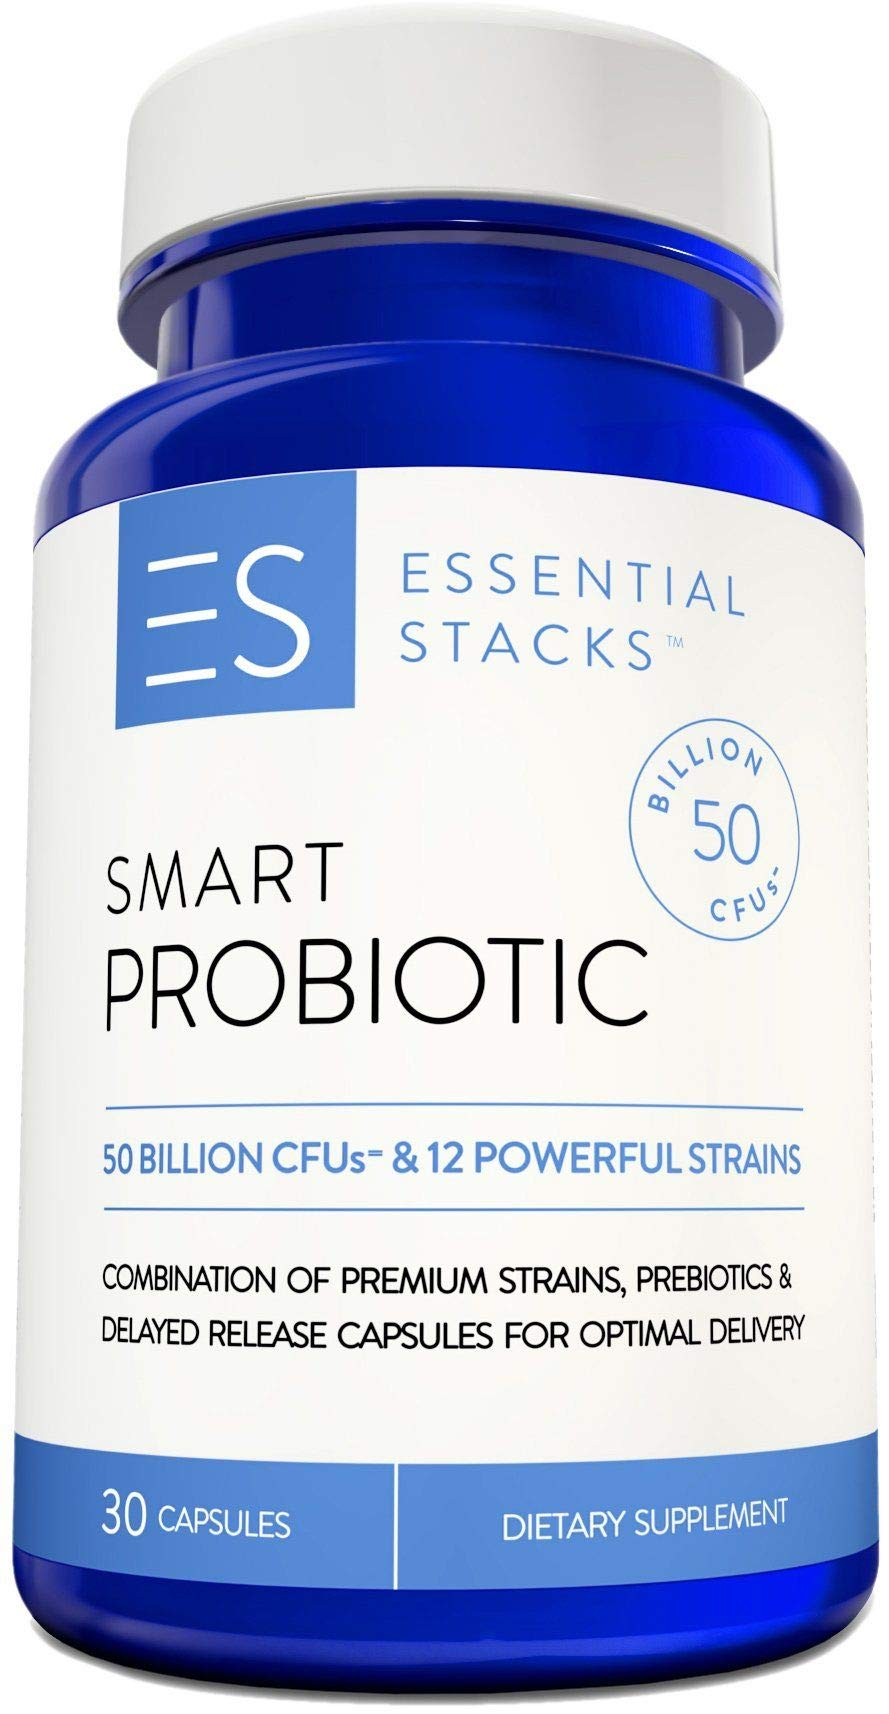 50 Billion Probiotic Supplement - With 12 Premium Strains, 250mg Prebiotics & Delayed Release Capsule Technology For Optimal Delivery. Refrigeration Optional